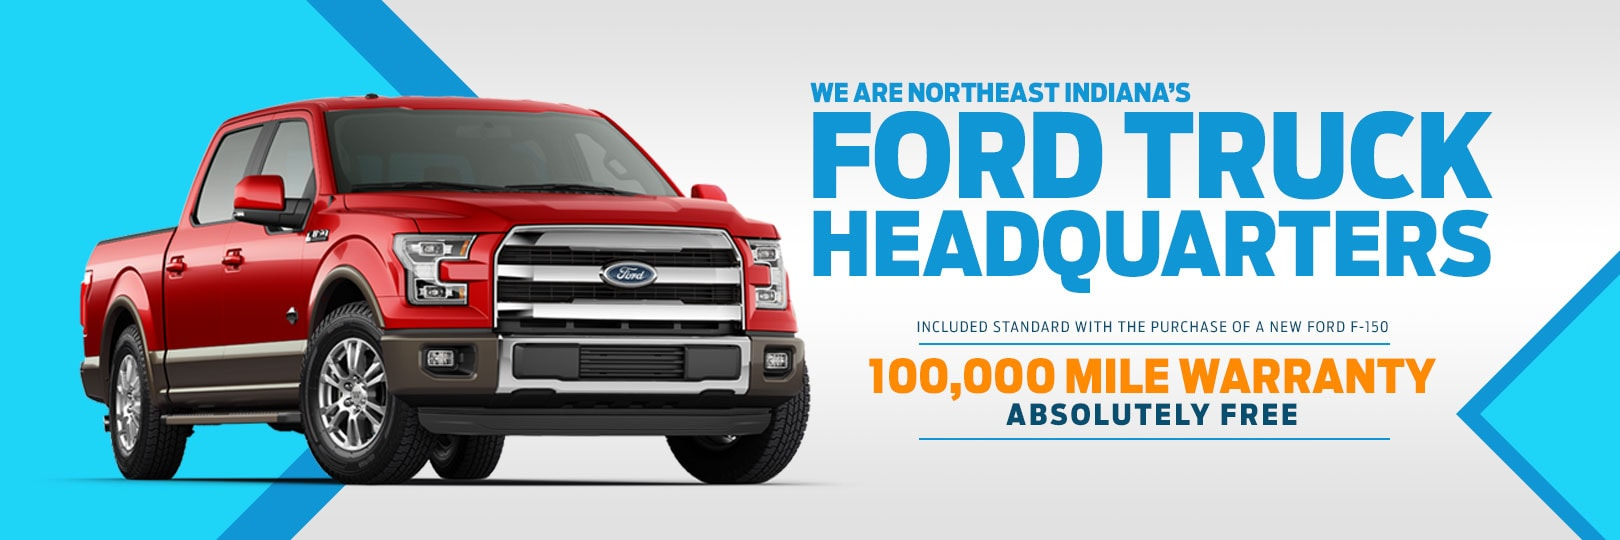 bob thomas ford lincoln north fort wayne in new used ford dealership. Black Bedroom Furniture Sets. Home Design Ideas